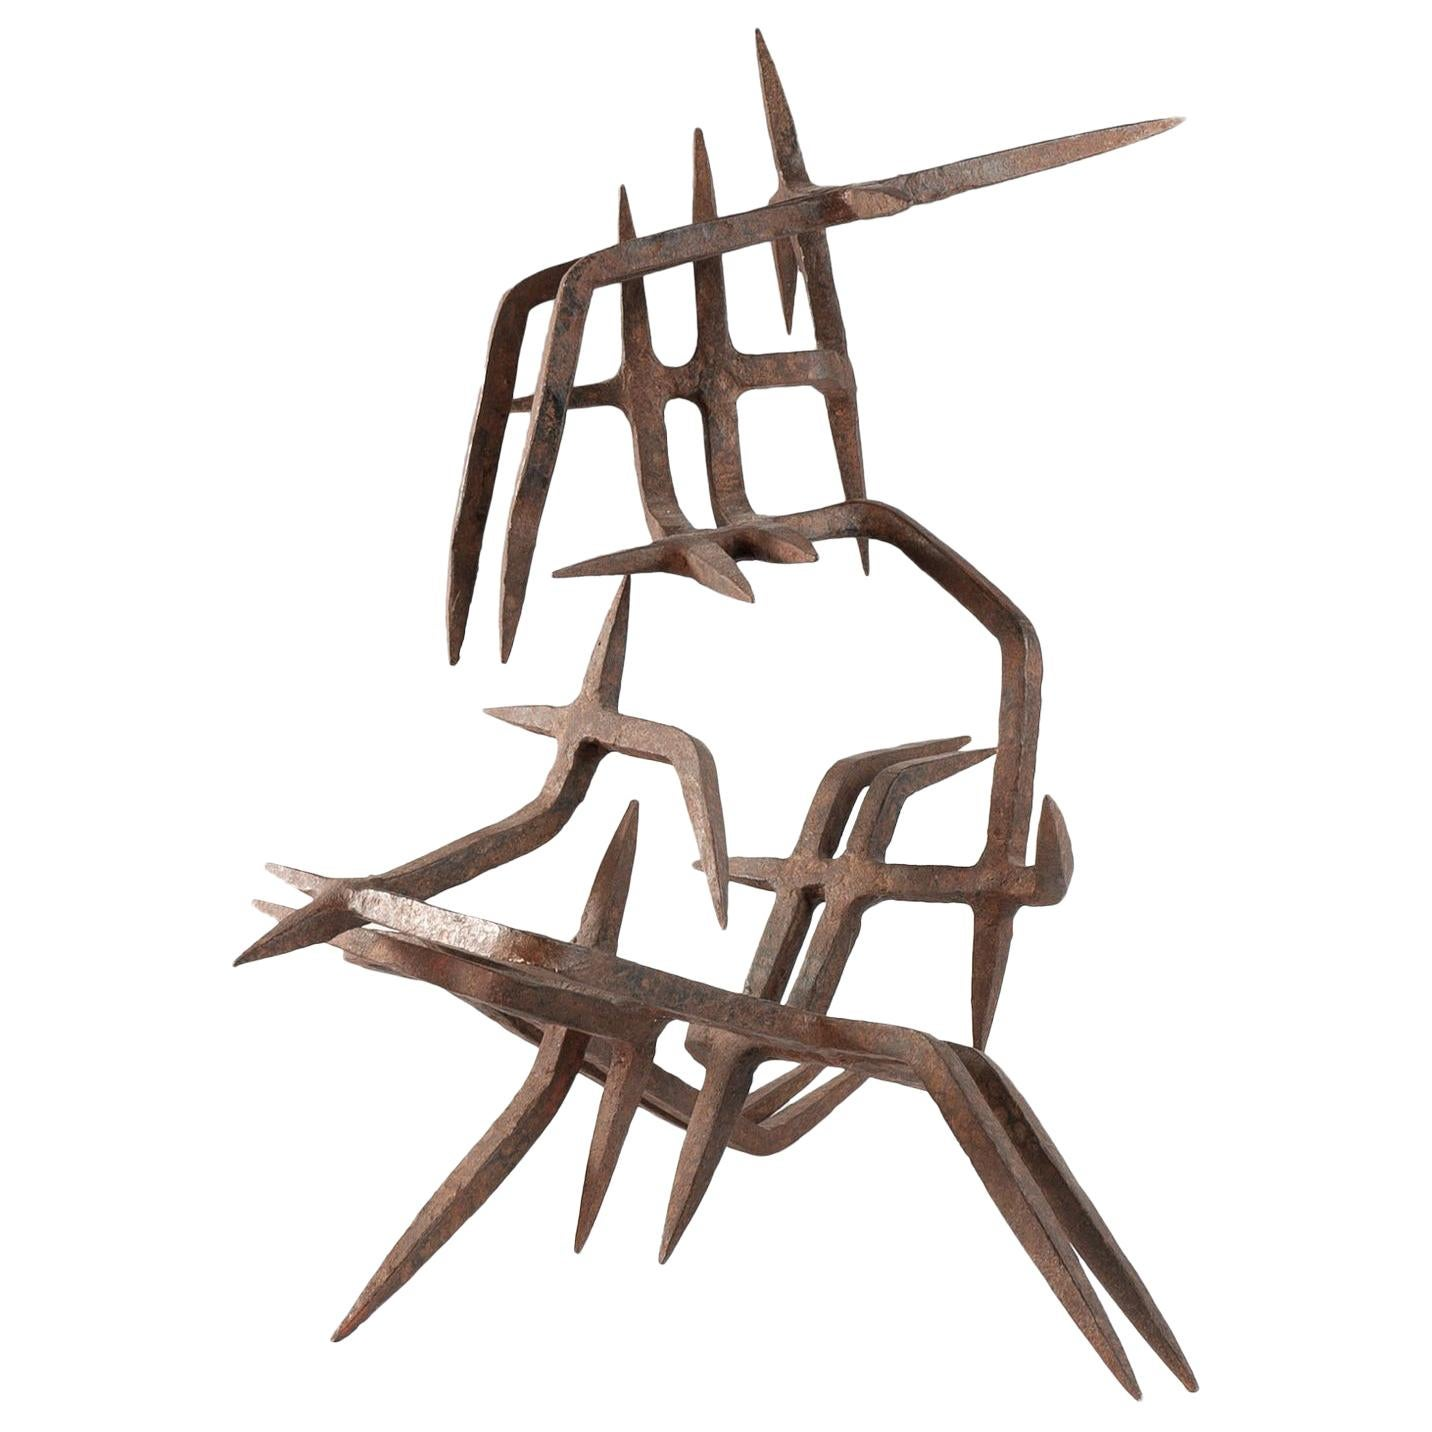 Wrought Iron Forms by Marcello Fantoni